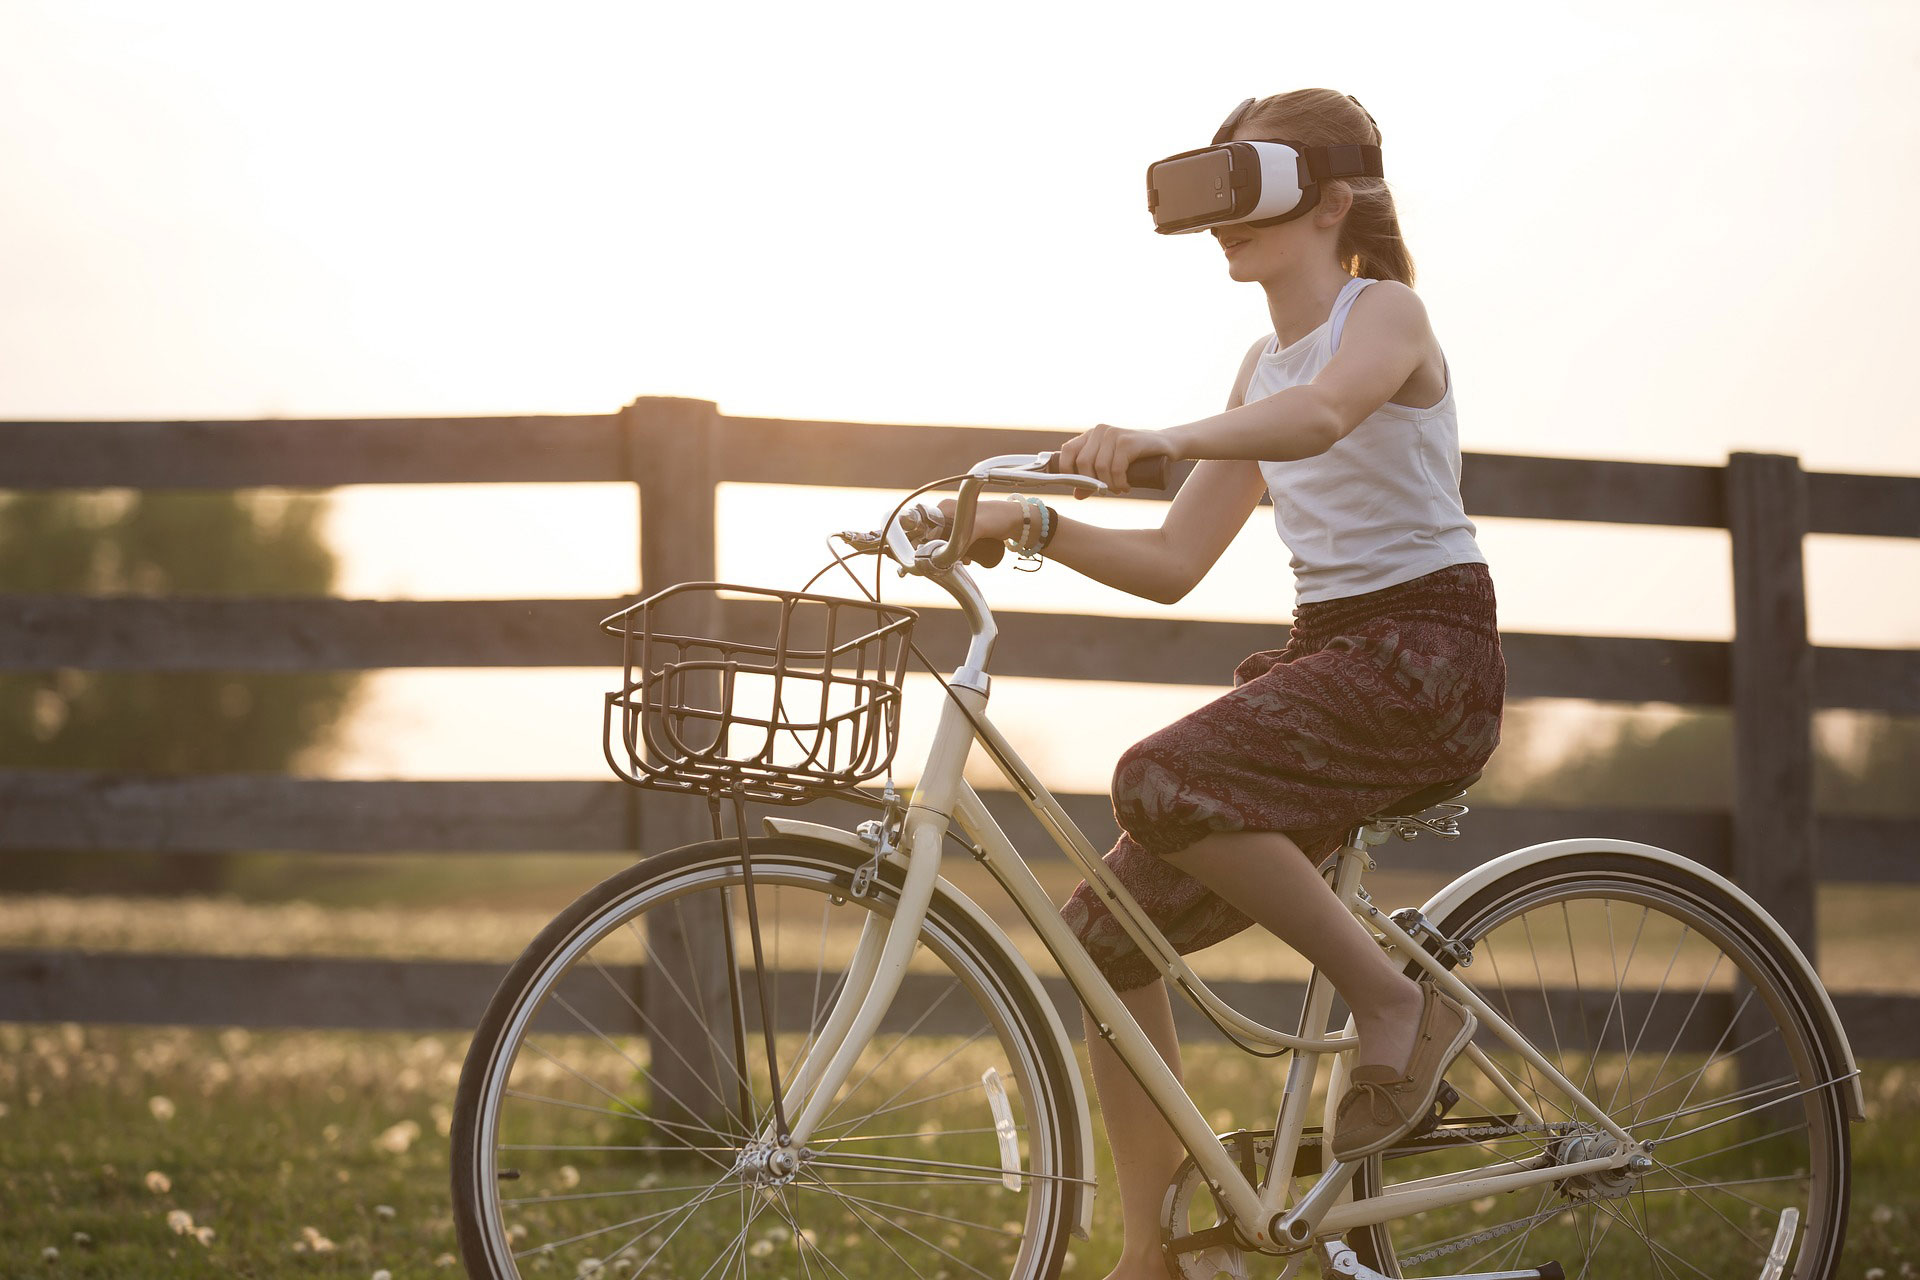 A girl wearing VR glasses while on a bicycle